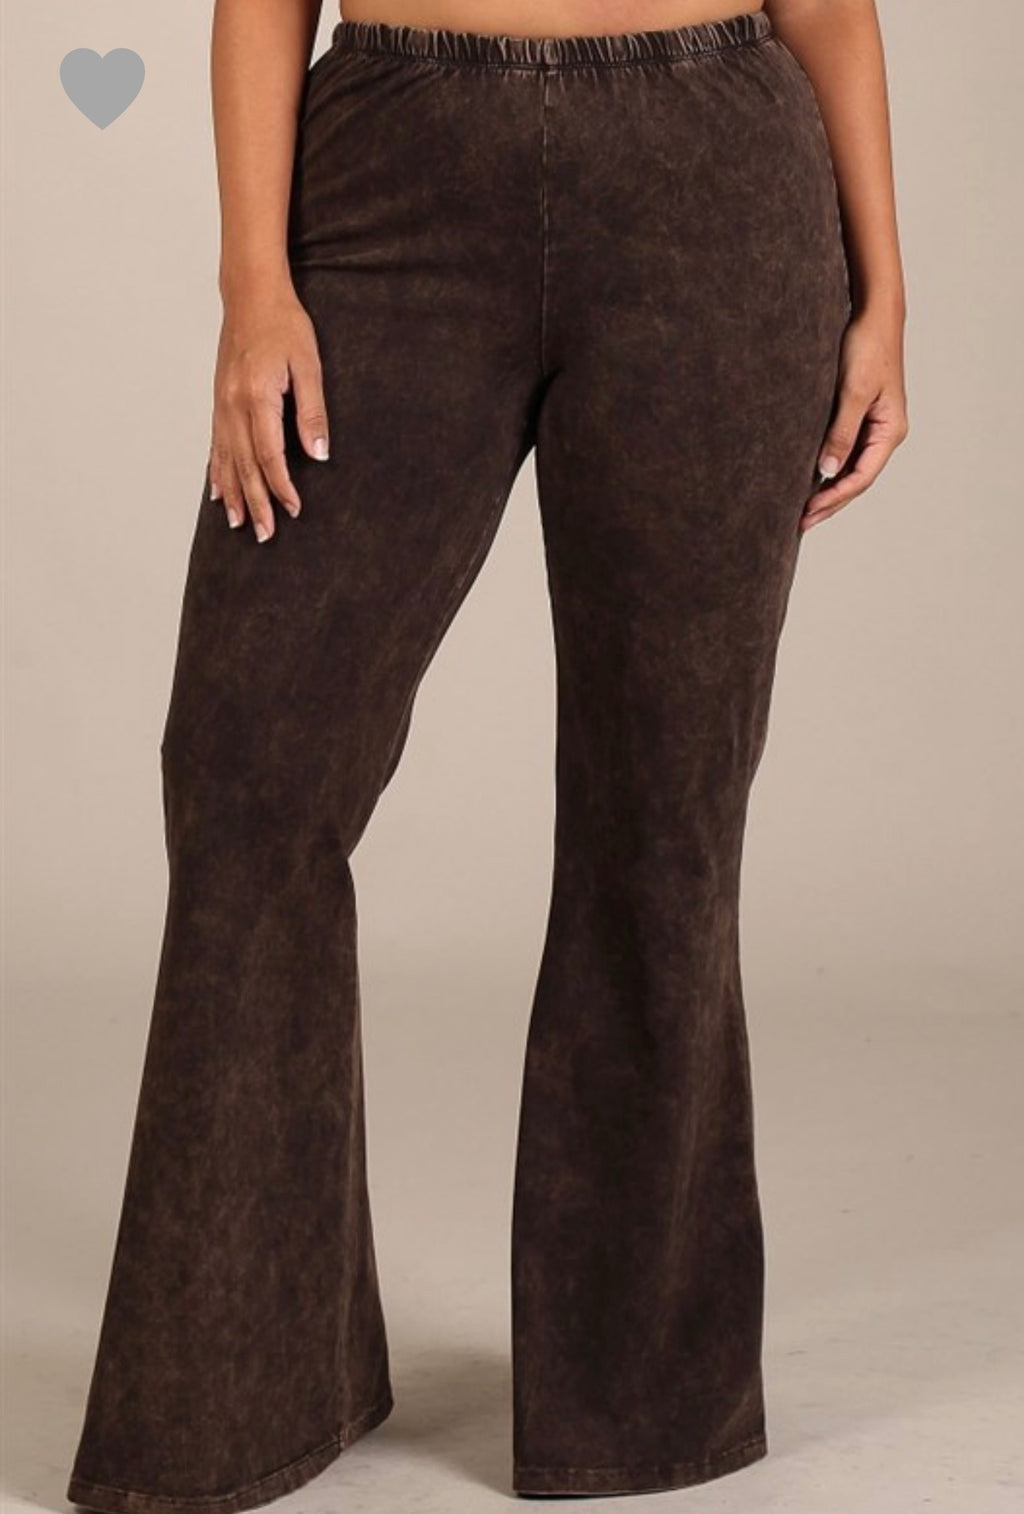 Mineral Wash Bell Bottoms (Curvy)